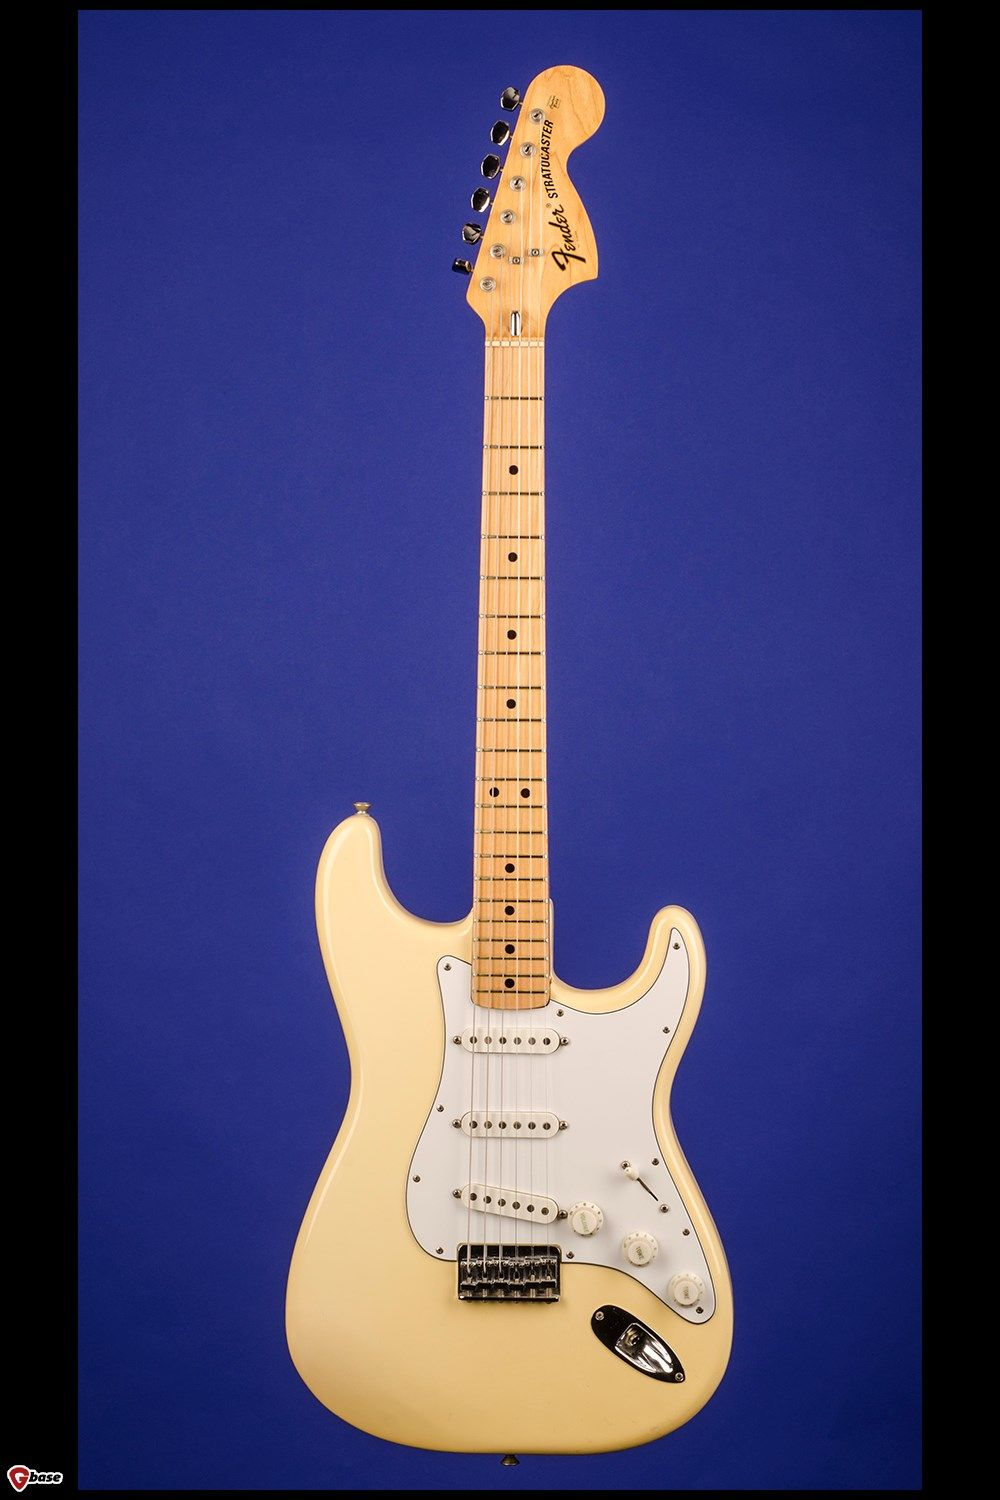 1975 fender stratocaster hardtail olympic white guitar stratocaster guitar acoustic guitar. Black Bedroom Furniture Sets. Home Design Ideas